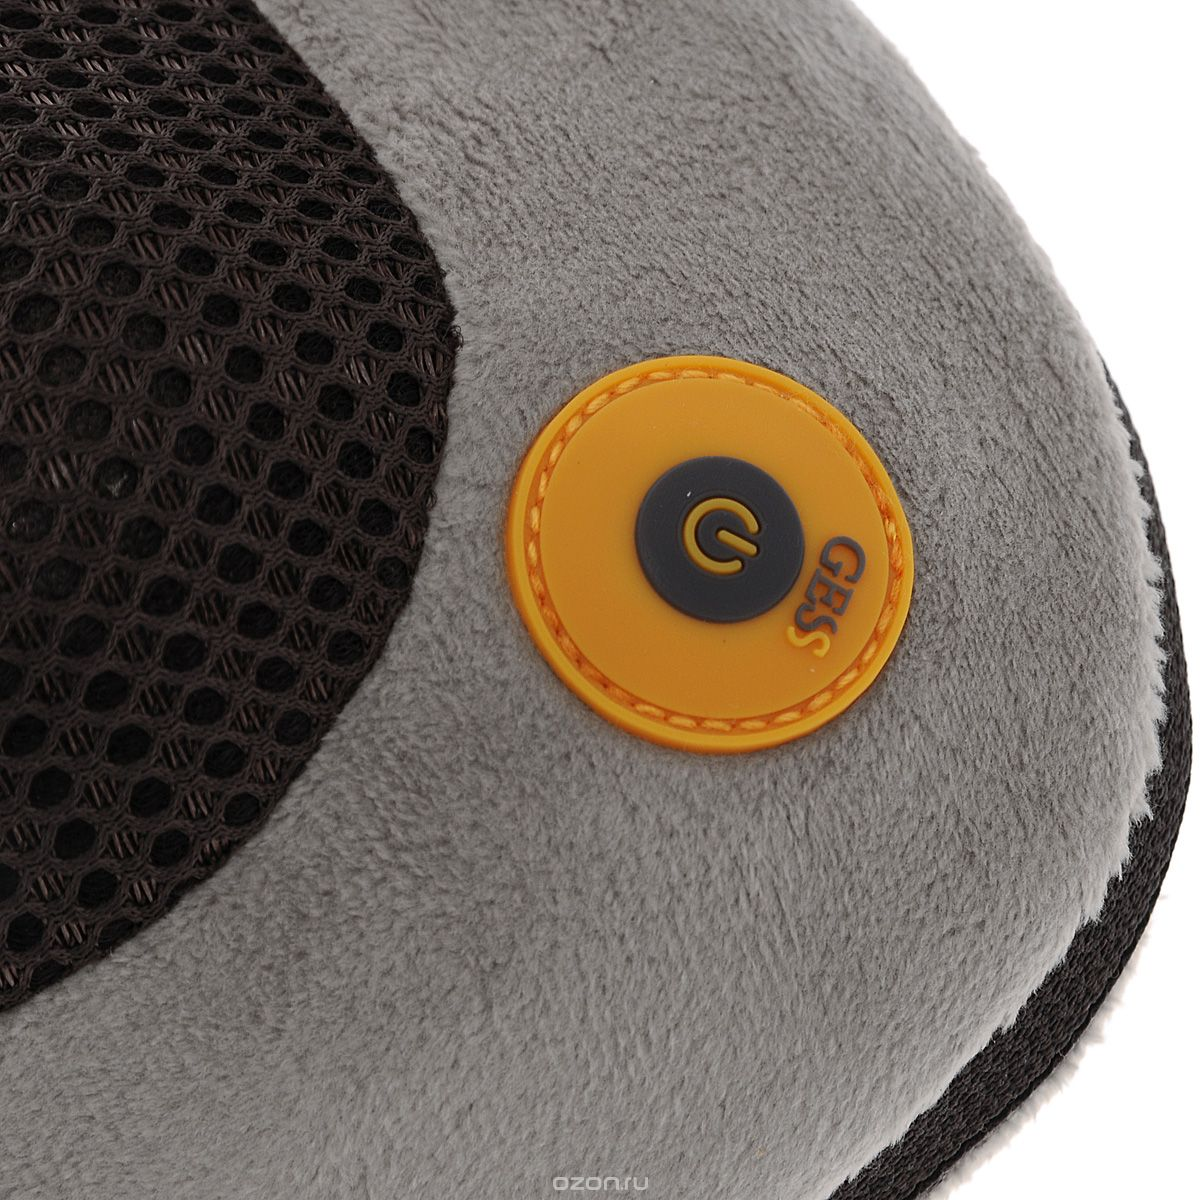 Gess Neck Massage Pillow